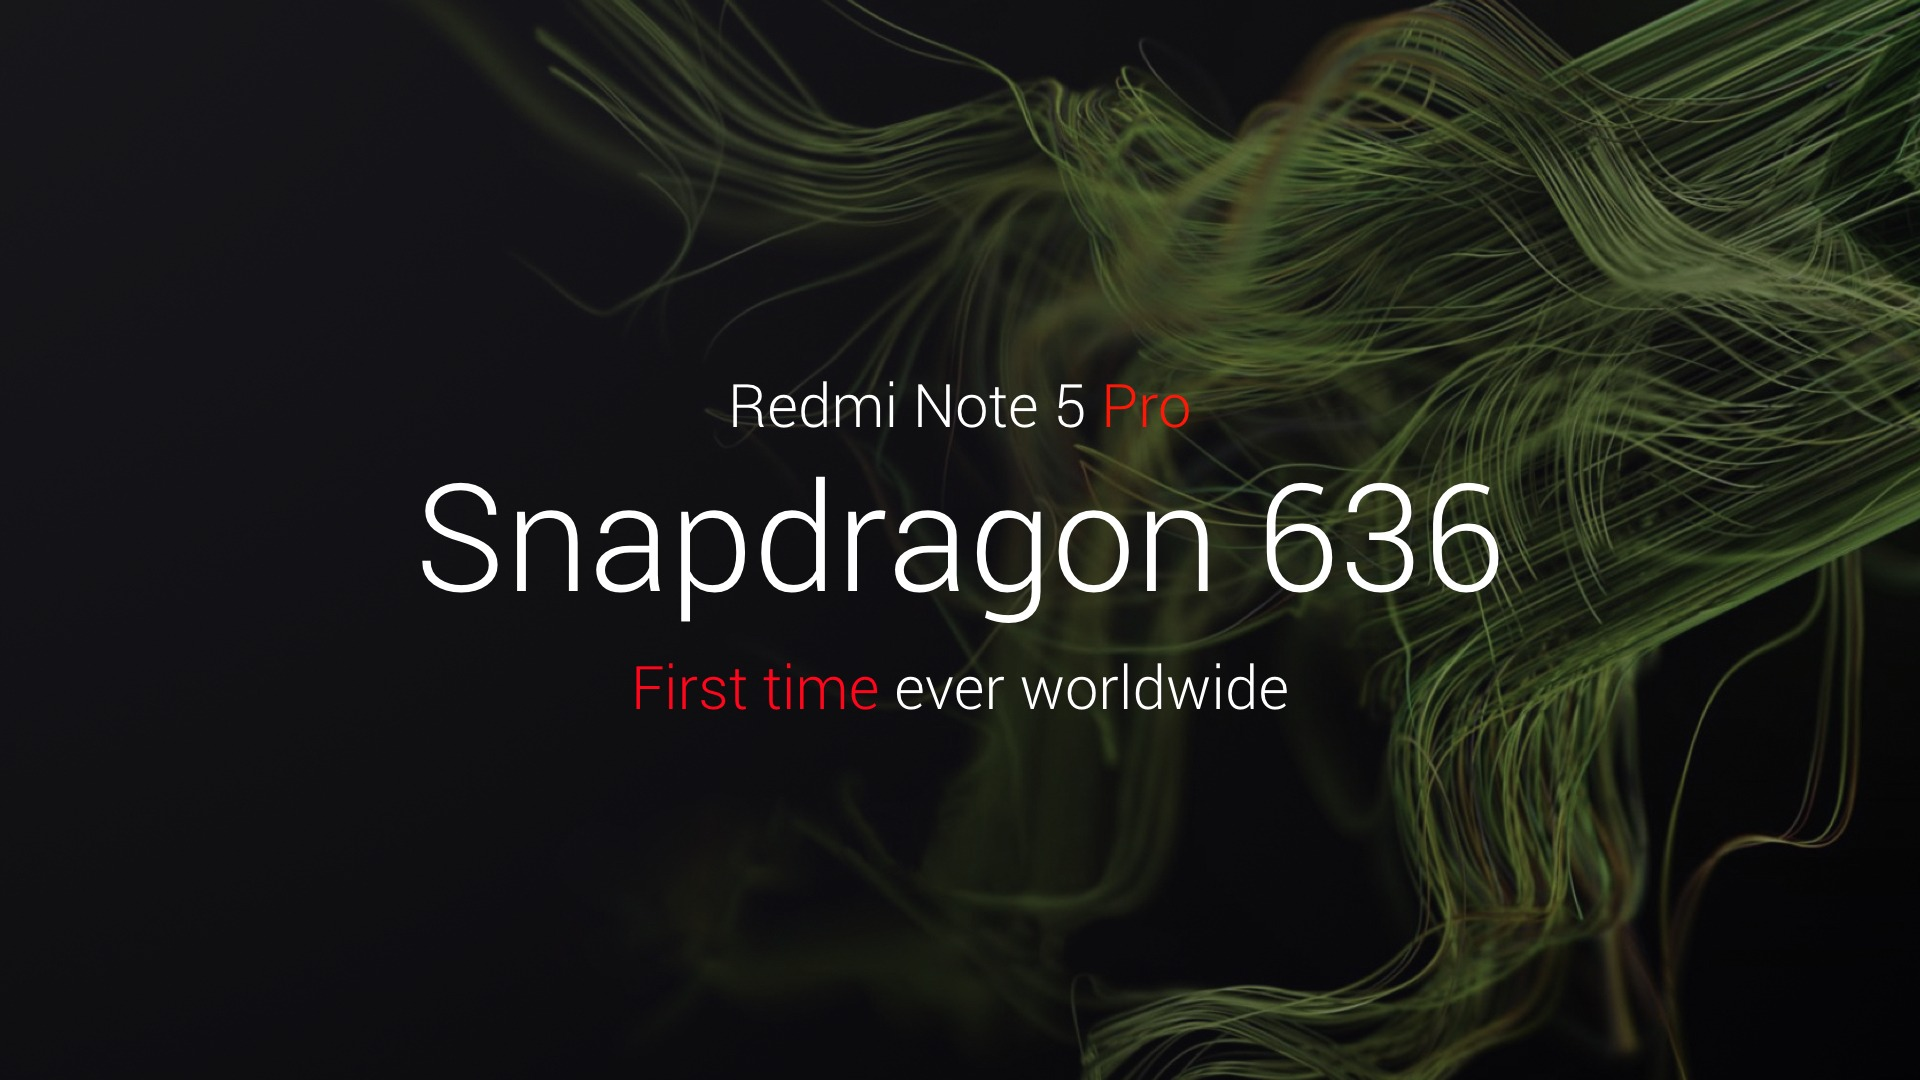 Xiaomi Redmi Note 5 Pro Officially Launched - Here's all you need to know 5